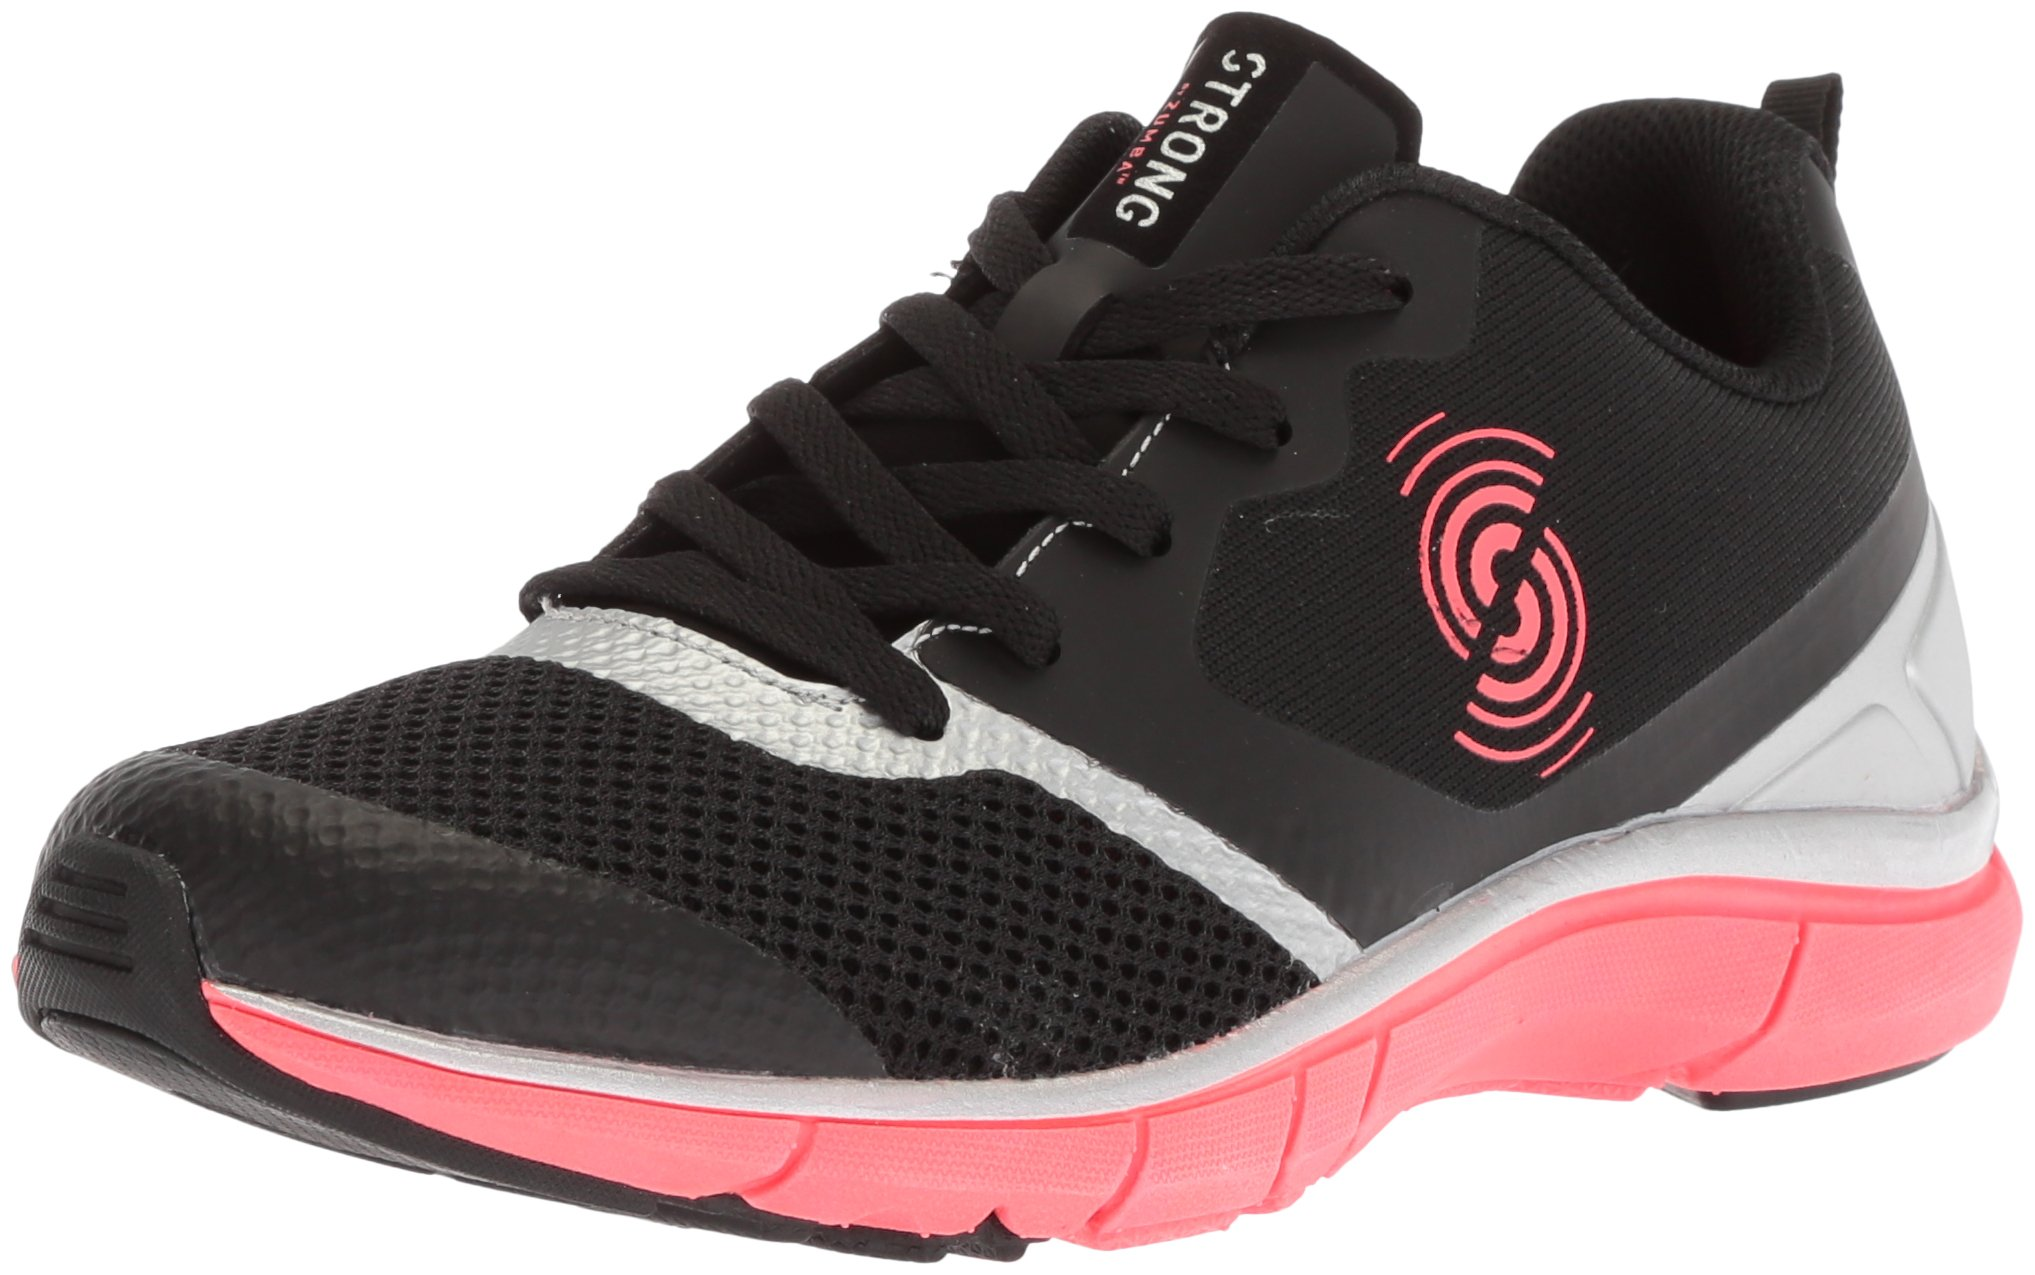 STRONG by Zumba Women's Fly Fit Athletic Workout Sneakers with High Impact Compression, Black/Silver, 7.5